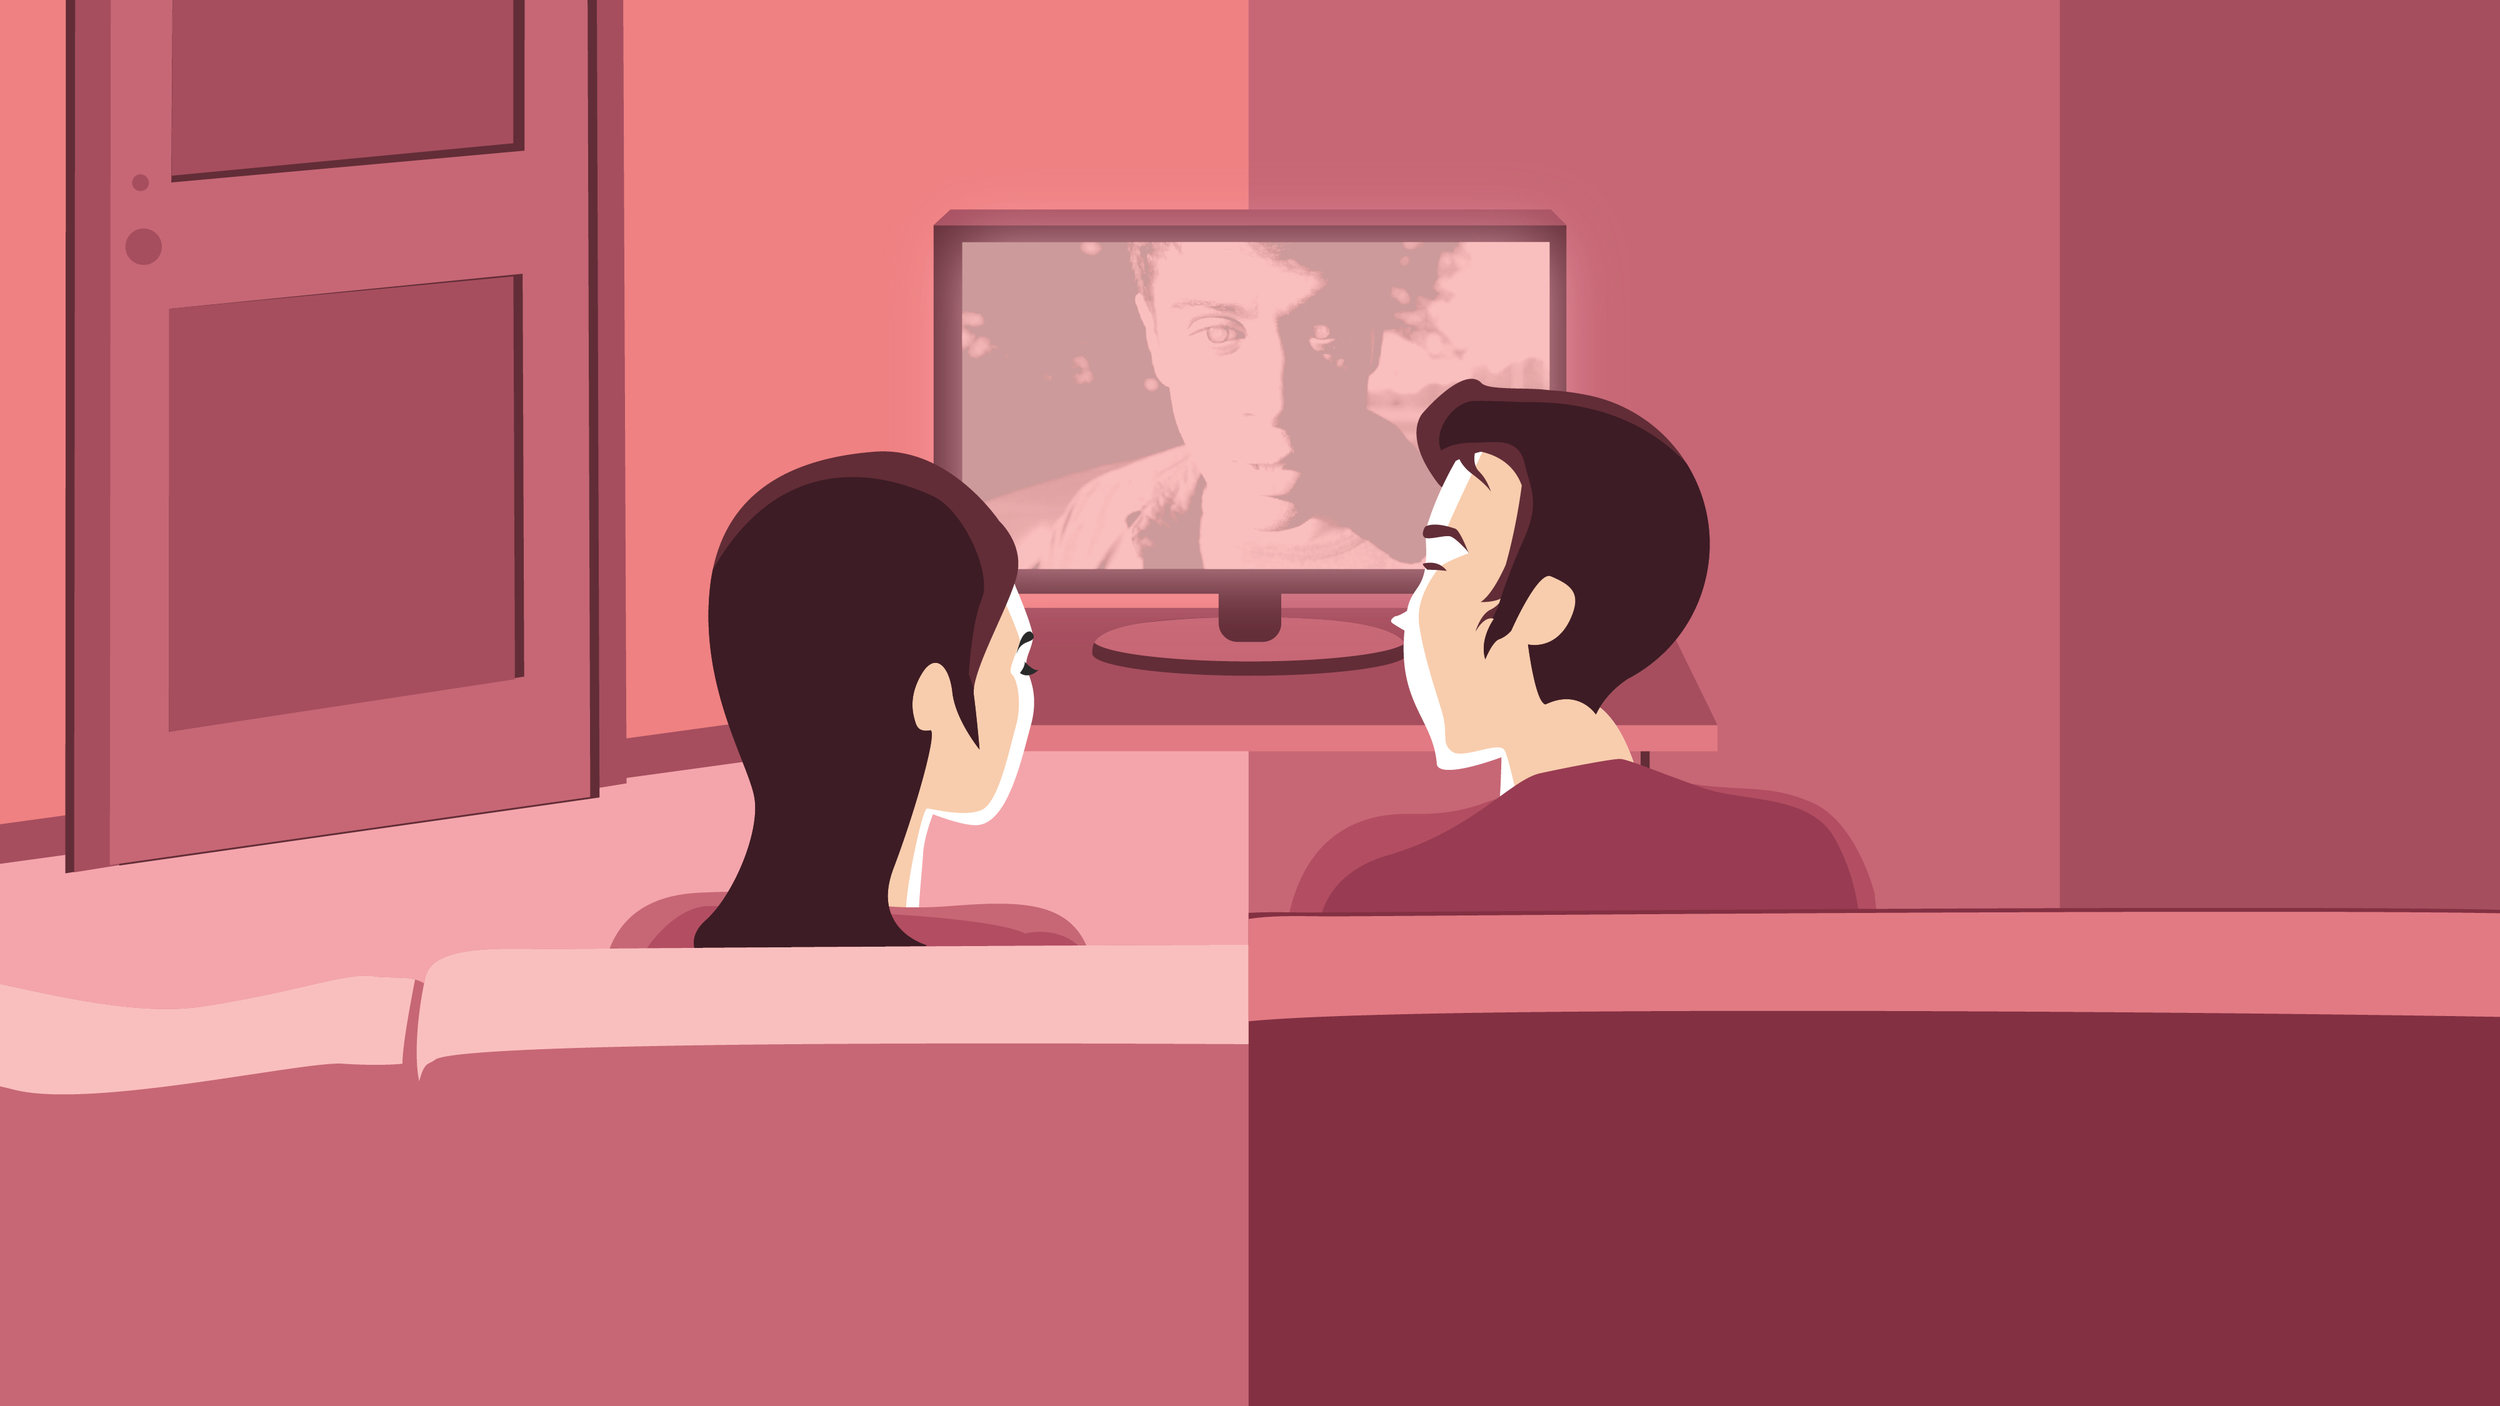 The movie begins to play on both Dylan and Lily's Television sets. Dylan and Lily are watching the movie as if they are in the same space.